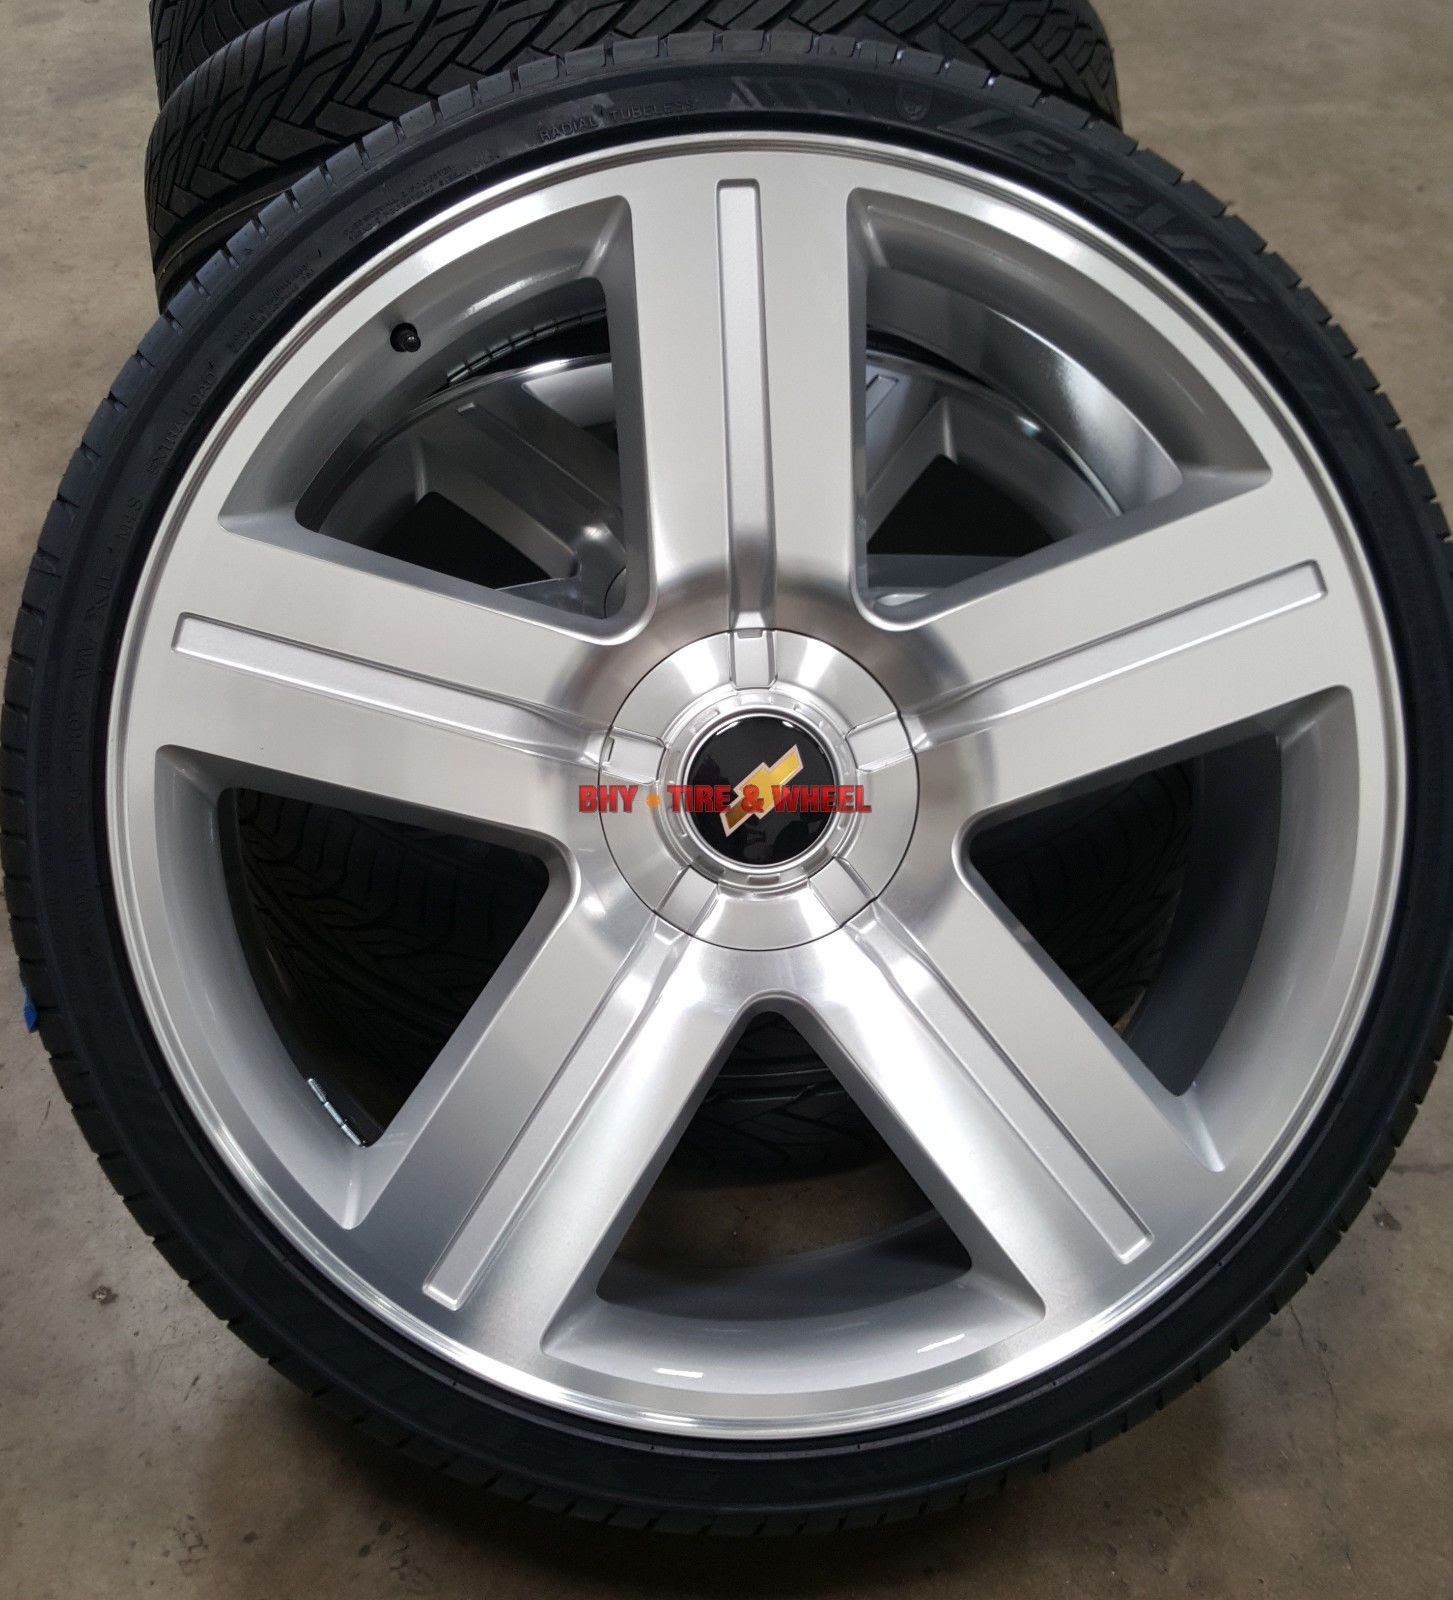 24 Inch Wheels And Tires Texas Edition Style Rims Silverado Silver Machined 28 Rims Rims